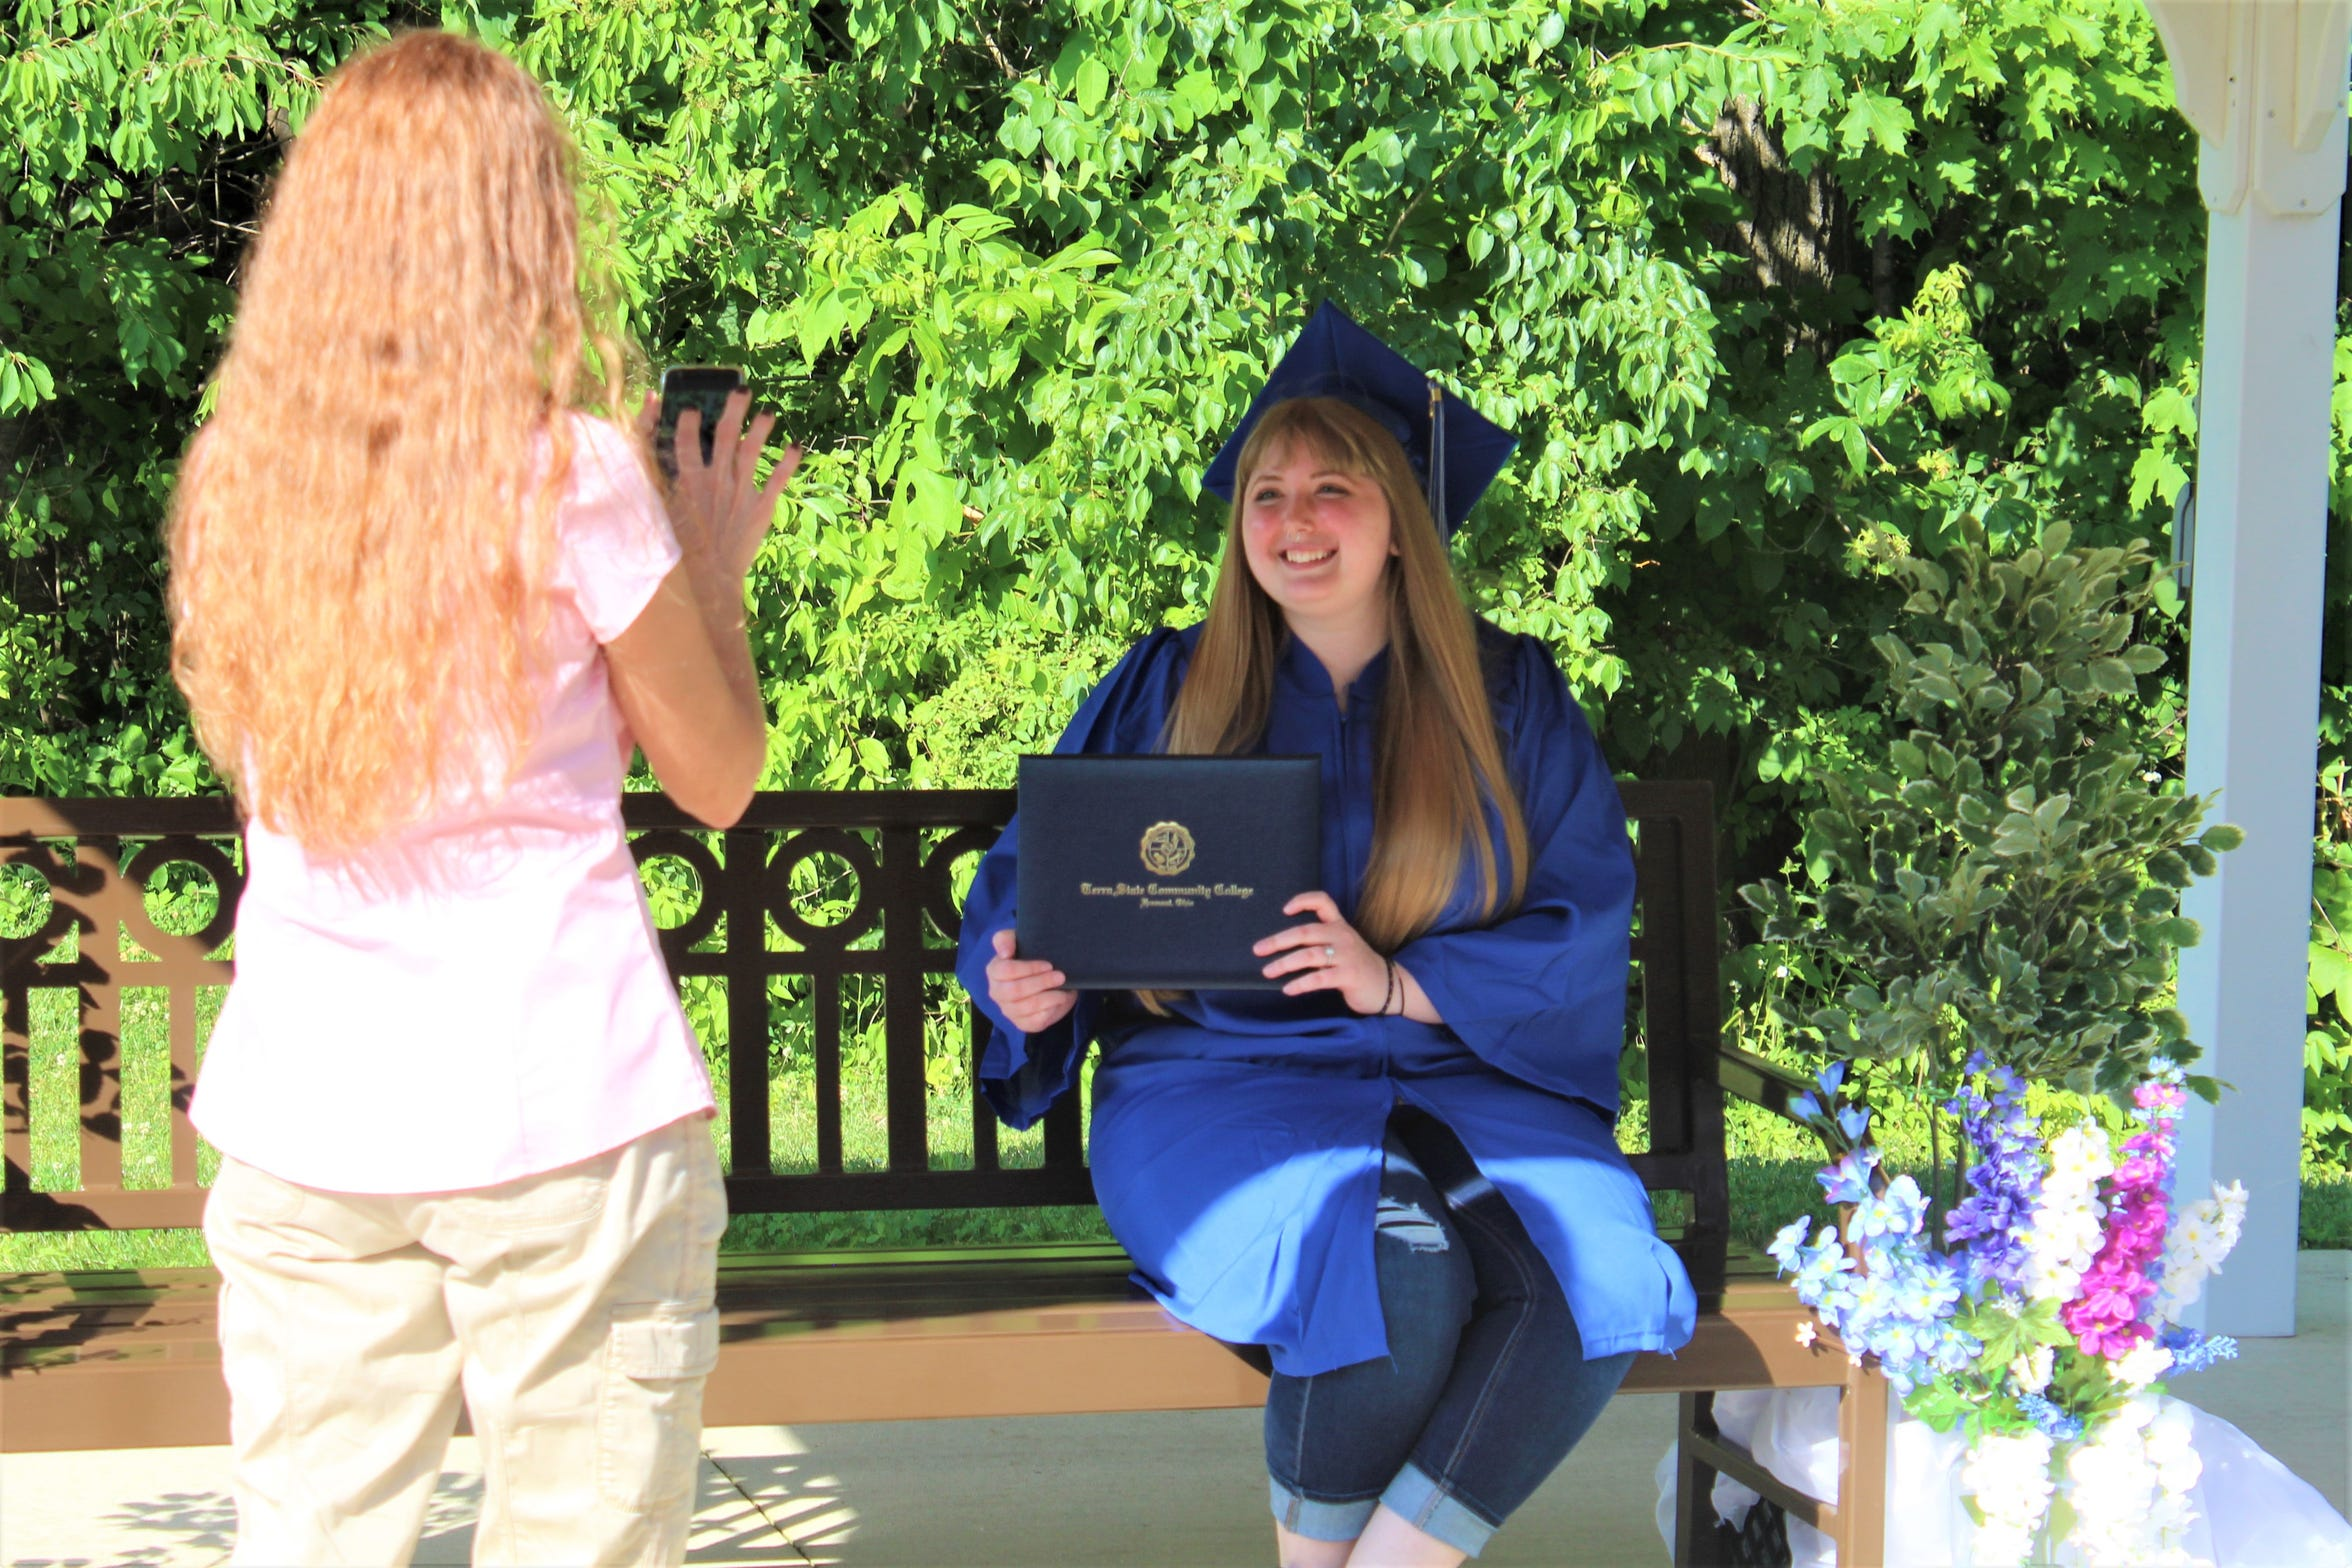 Aubrey Stanforth of Tiffin gets her photo taken with her Terra State Community College diploma Thursday out of the college's Neeley Center. Stanforth was awarded an associate's degree in psychology.